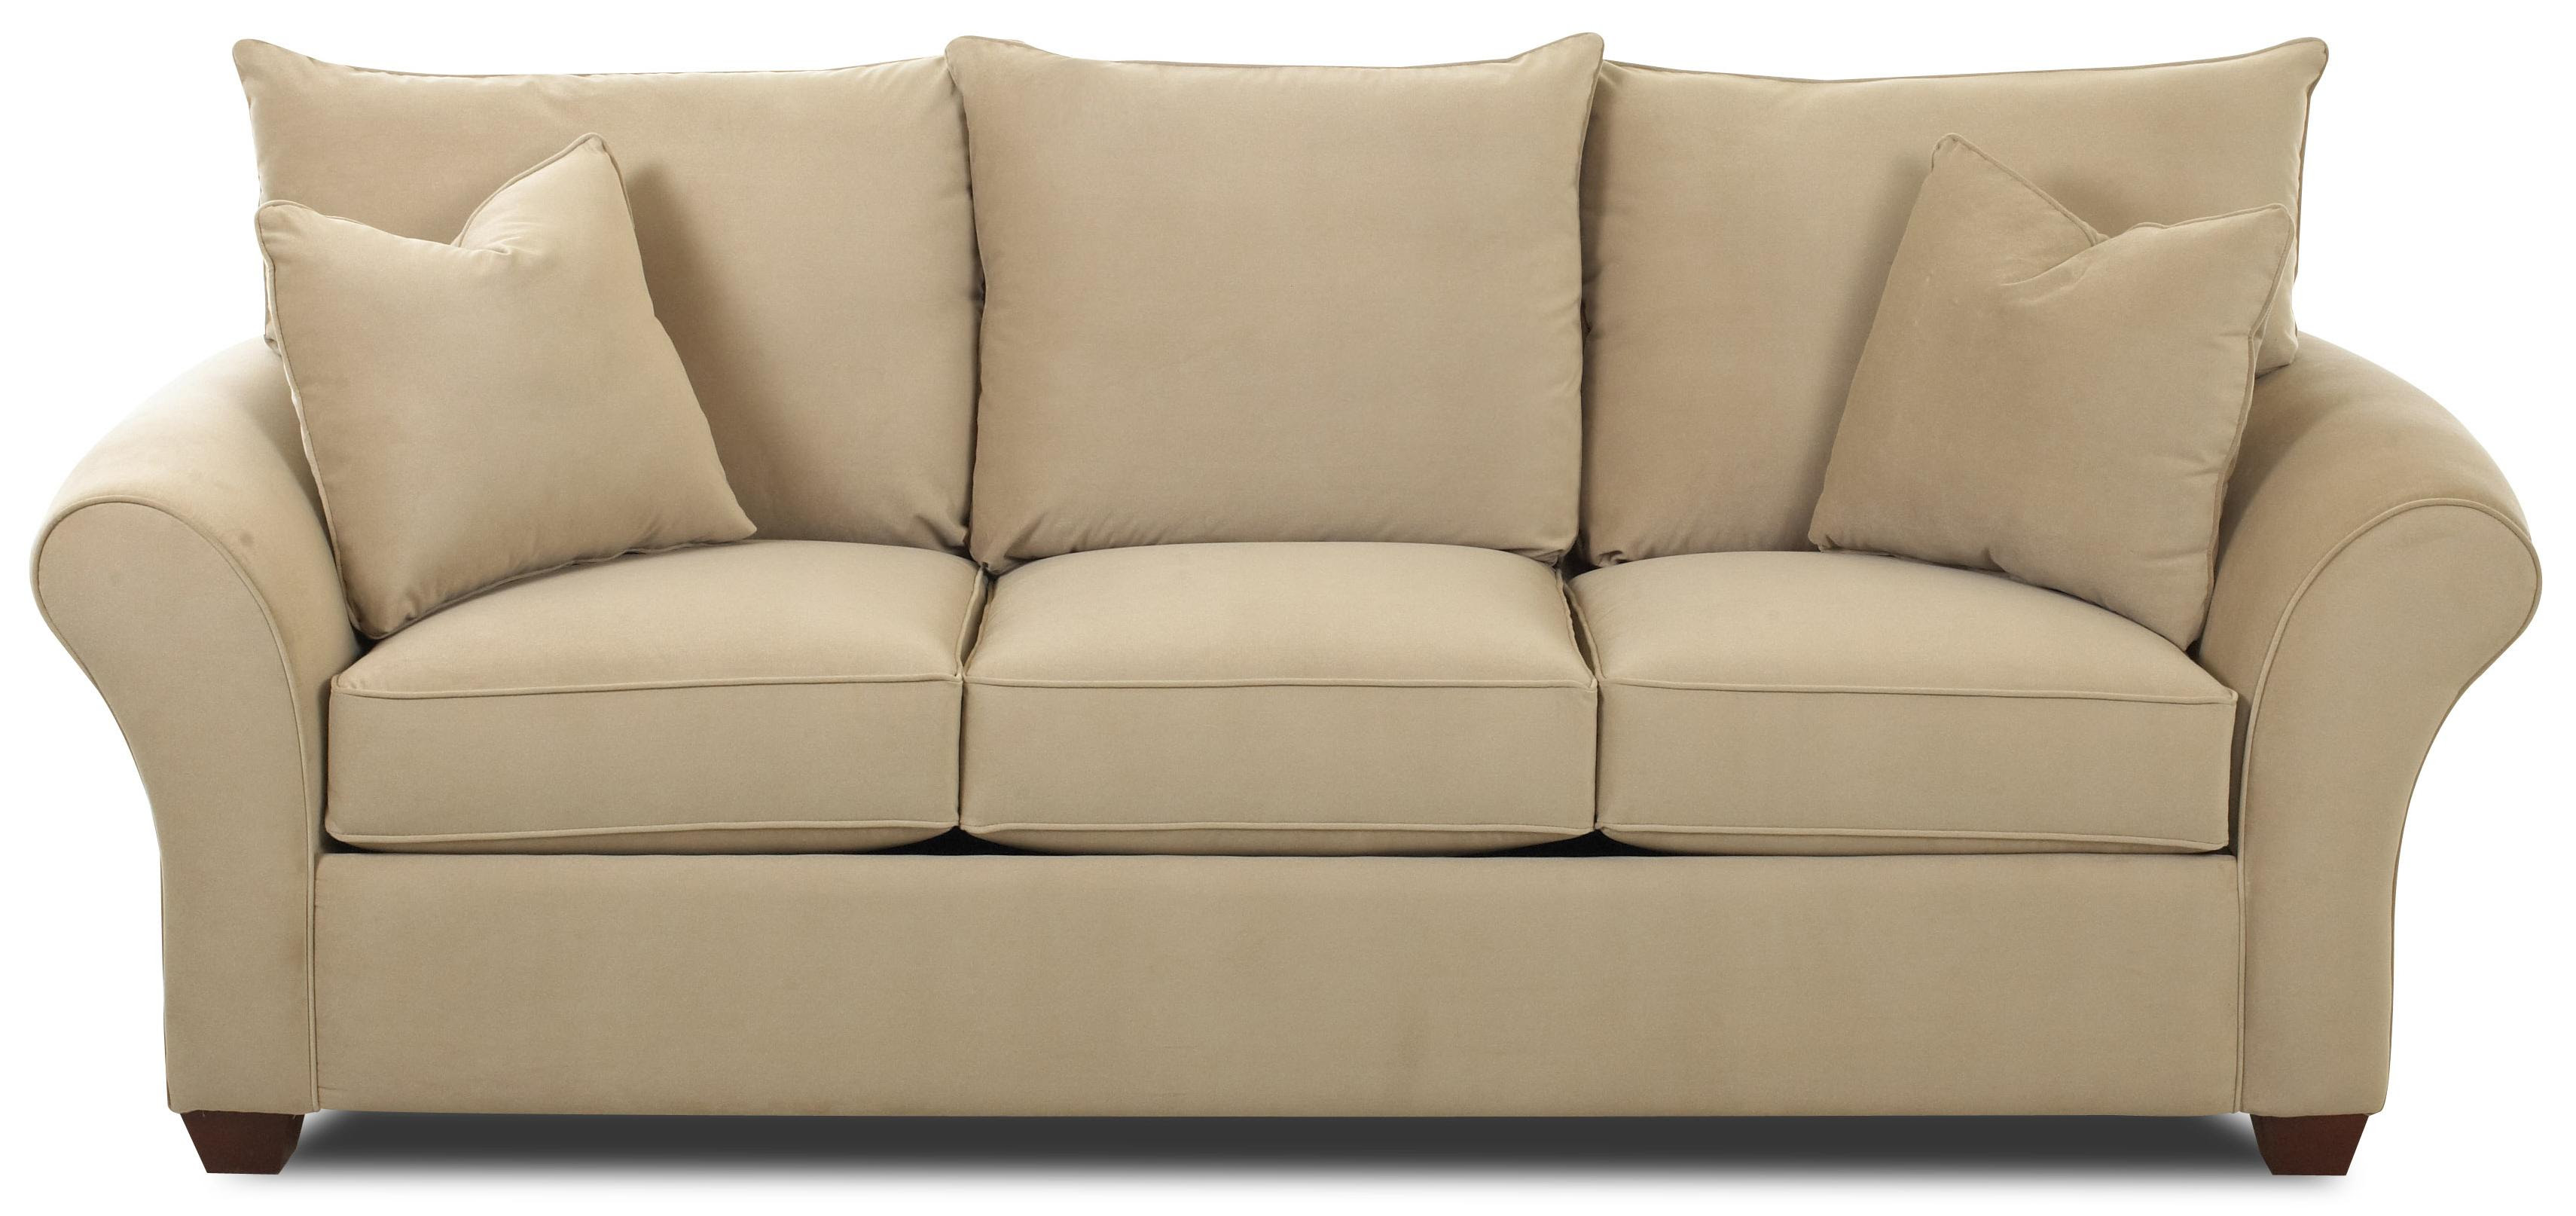 Cream Color Of Simple Couch With Its Pillow